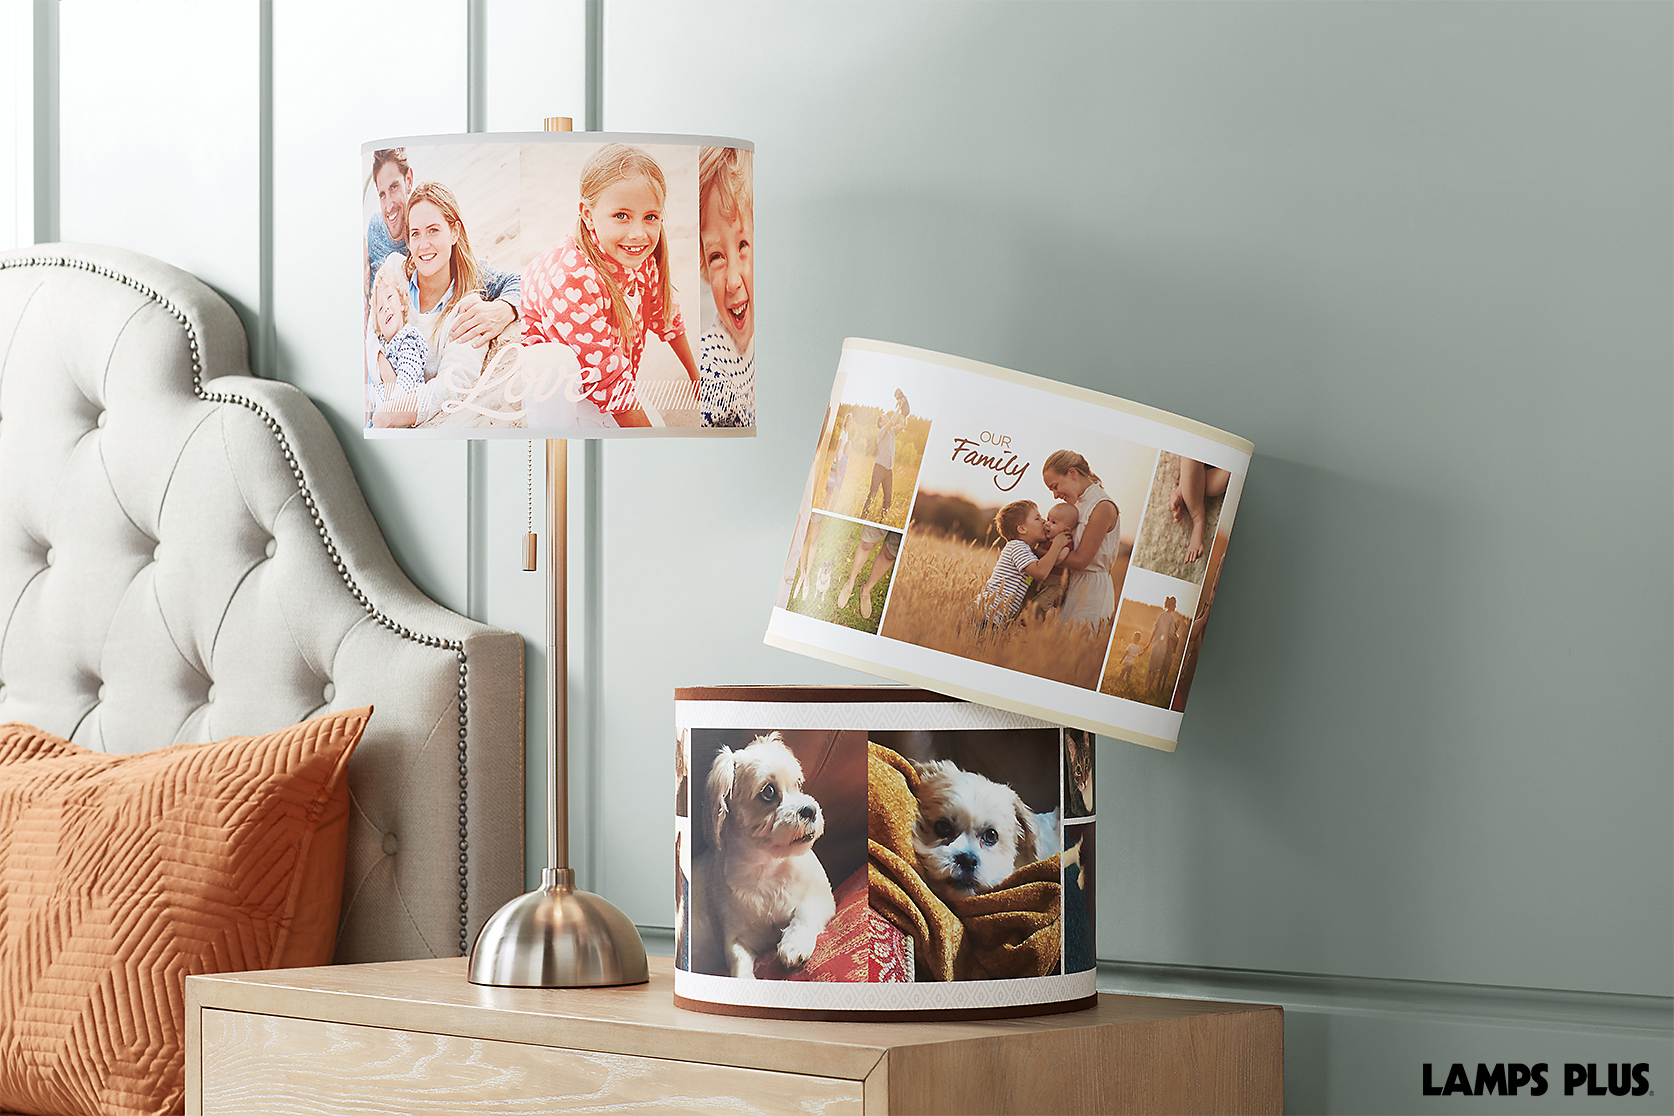 New Custom Photo Lighting and Pillows from Lamps Plus Offer Infinite